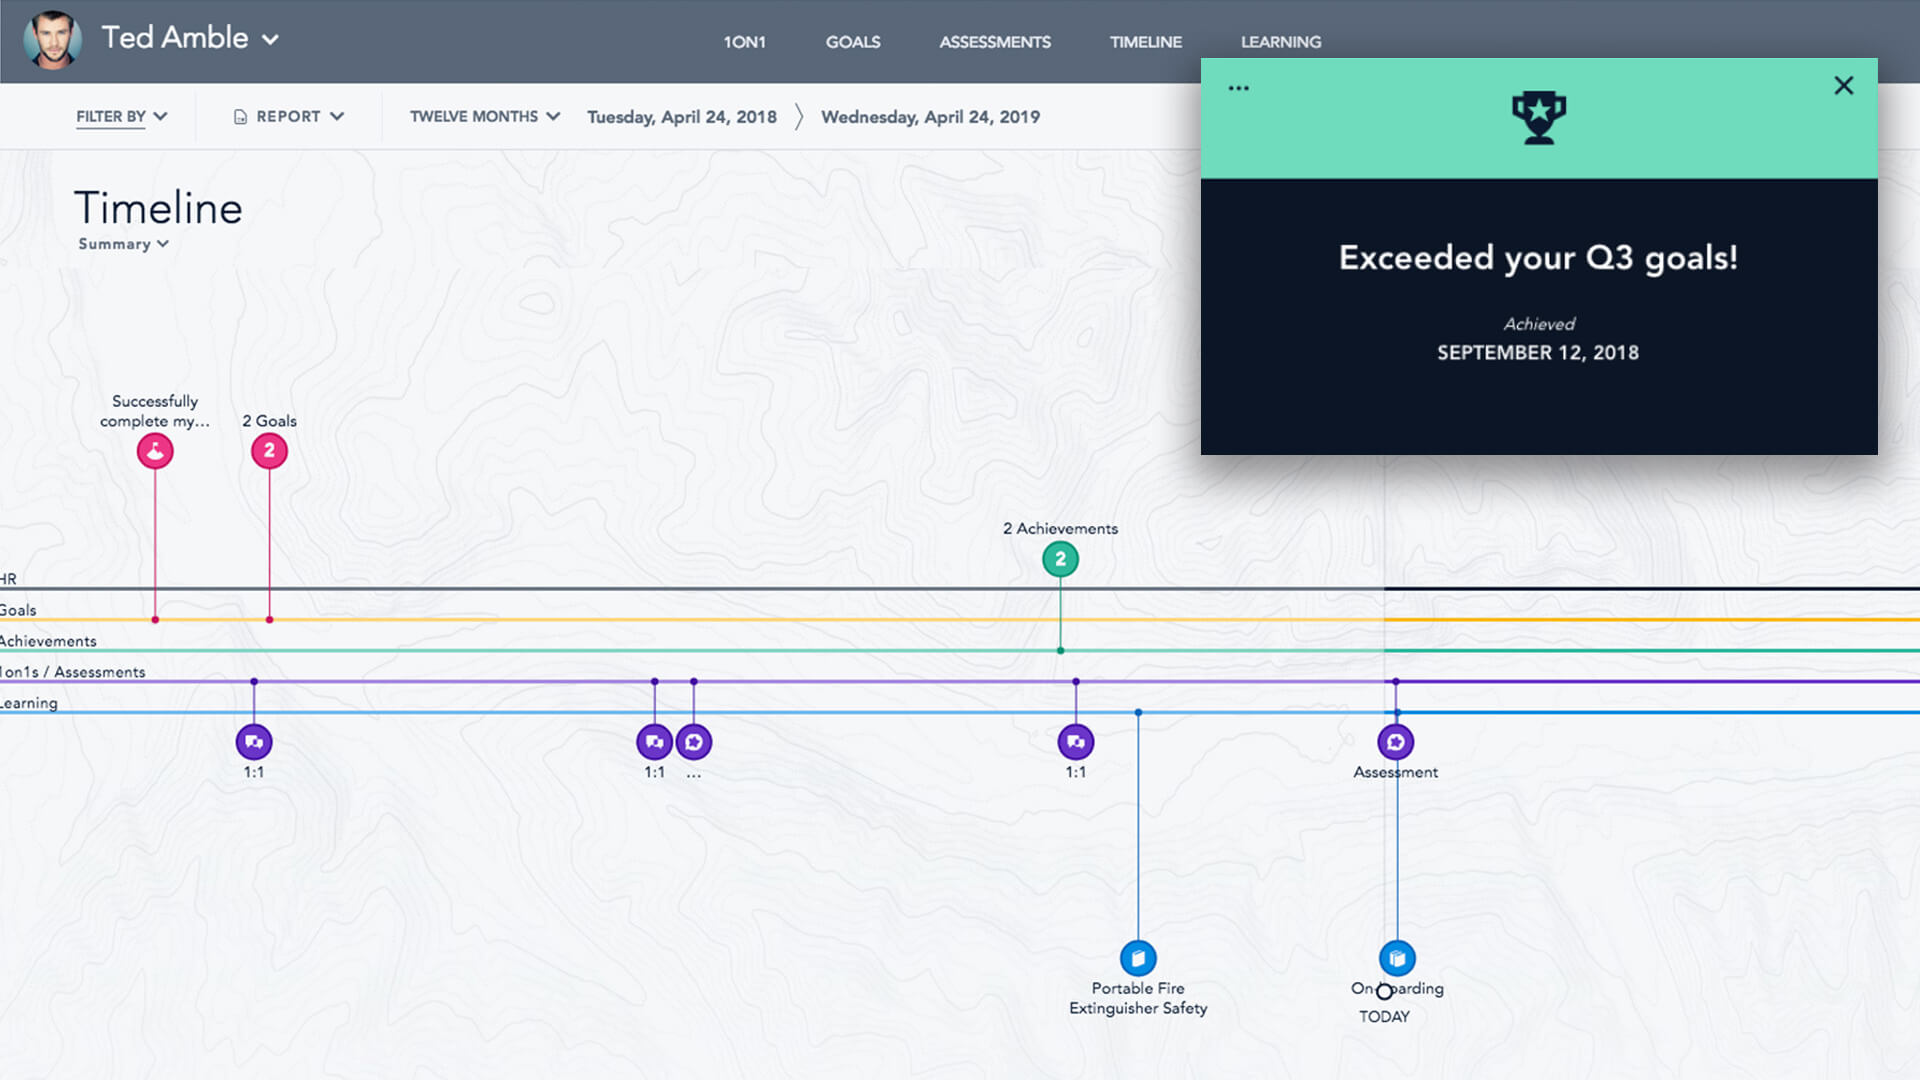 TIMELINE: Employees want continuous feedback and opportunities to grow their skills. Bridge shifts the focus from annual report cards to year-round learning, growth, and development.